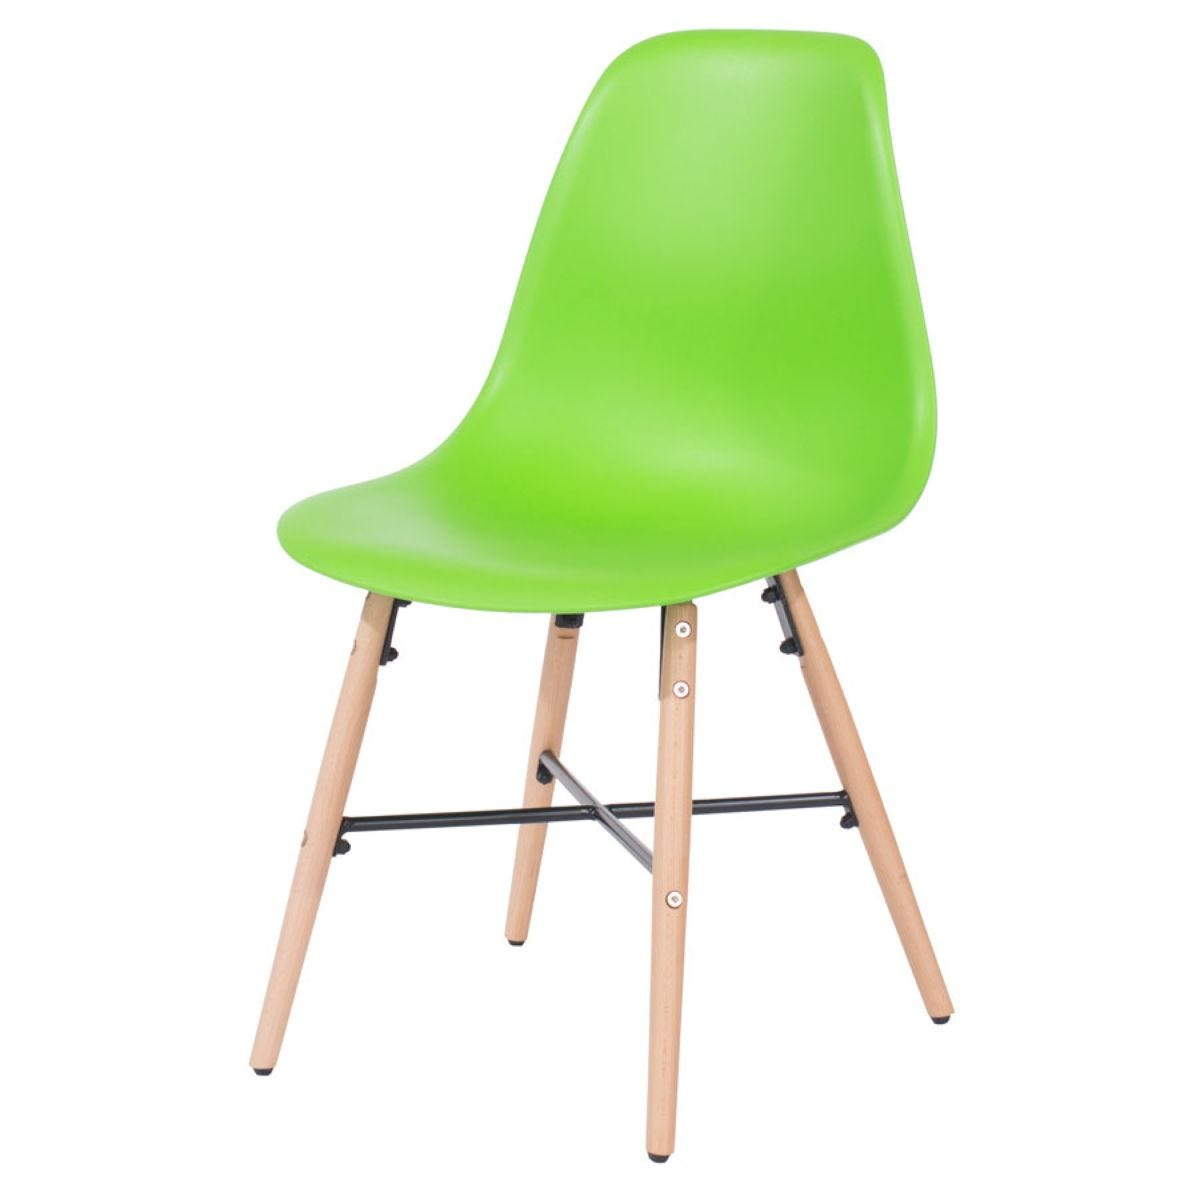 Roloku Pair of Chairs with Metal Cross Rails - Green